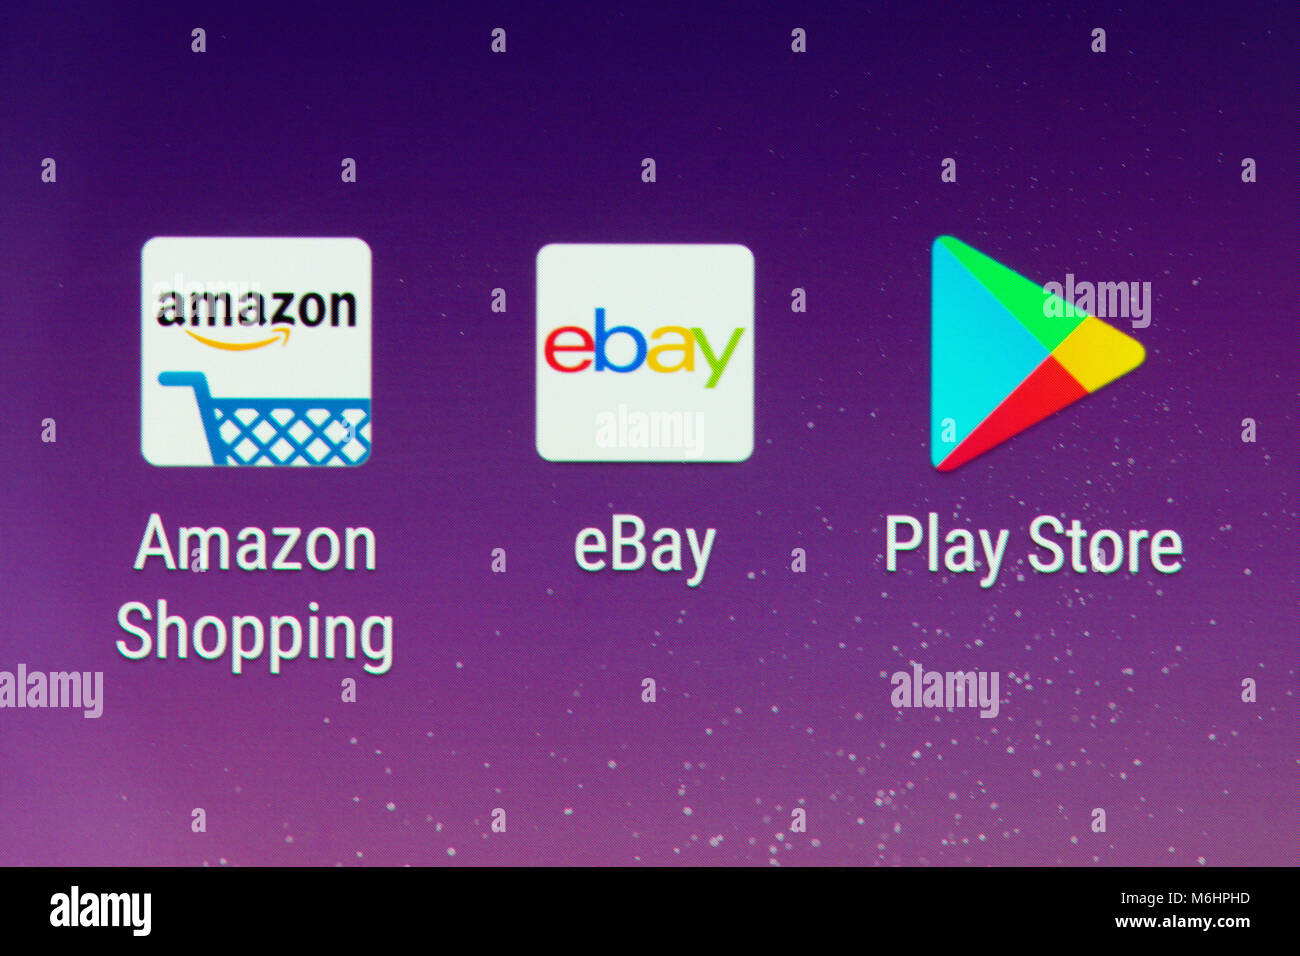 A Closeup Of The Amazon Shopping And Ebay App Icons On A Smartphone Stock Photo Alamy